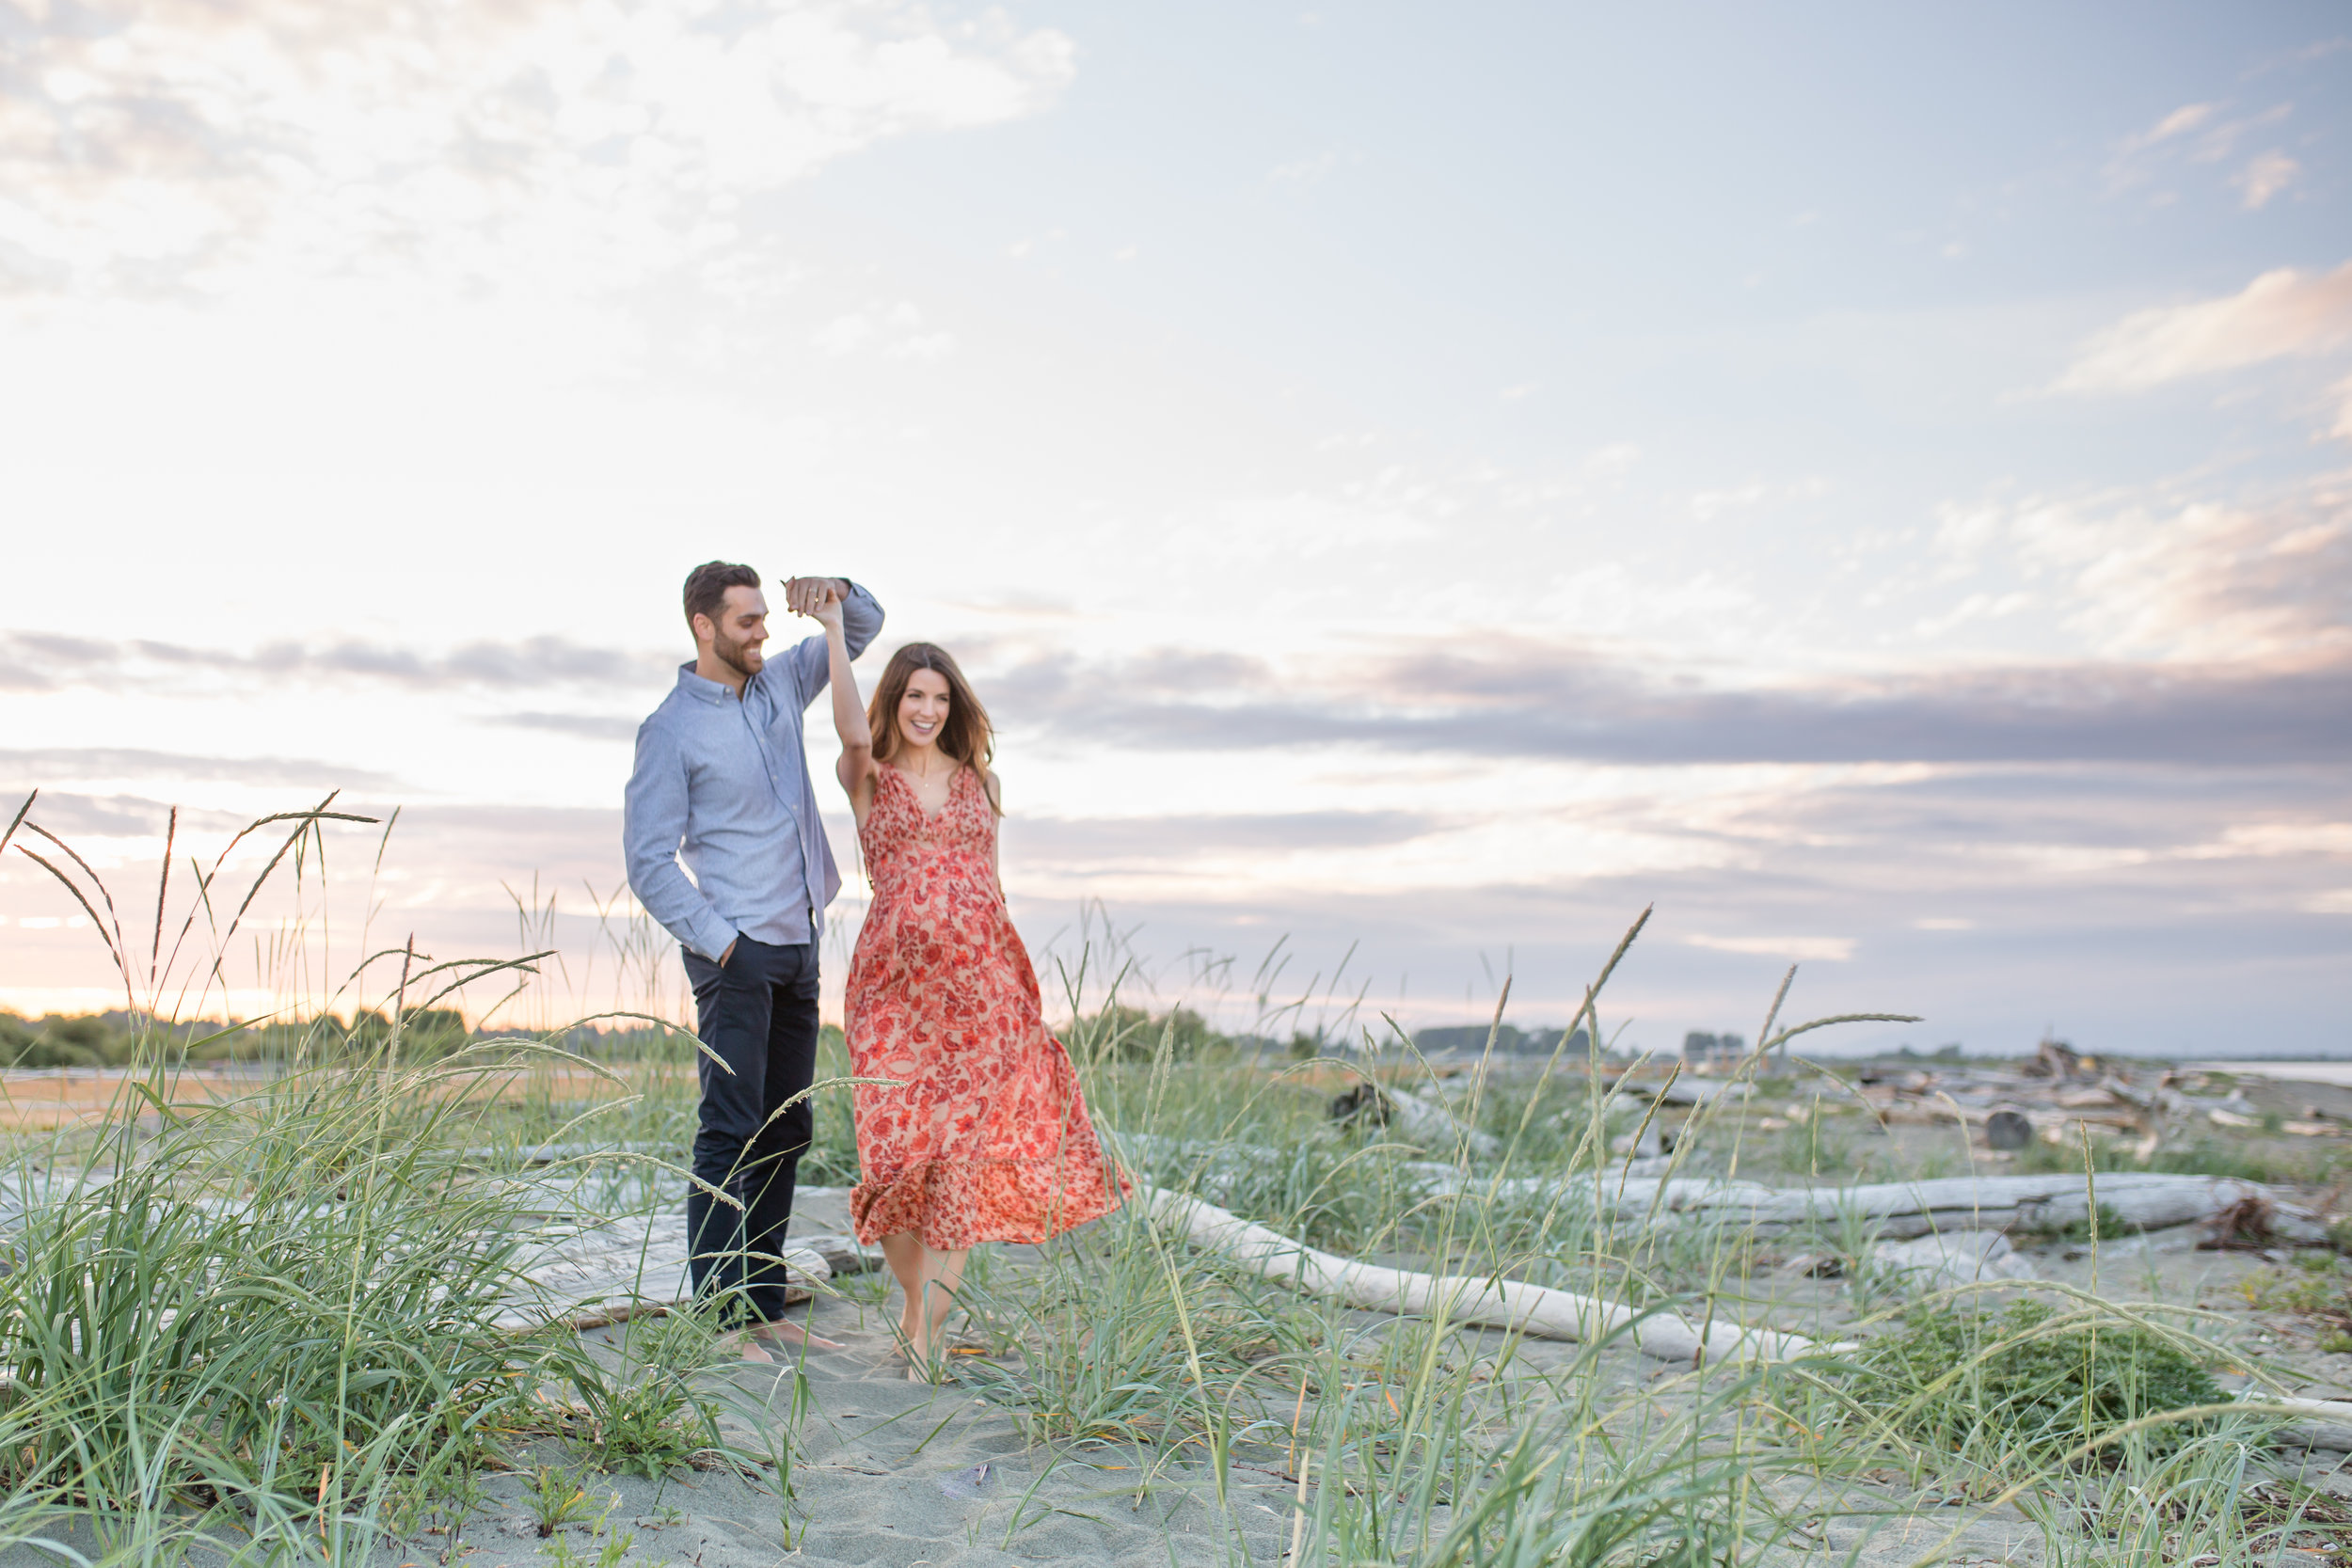 Centennial Beach Maternity Photos -16.jpg